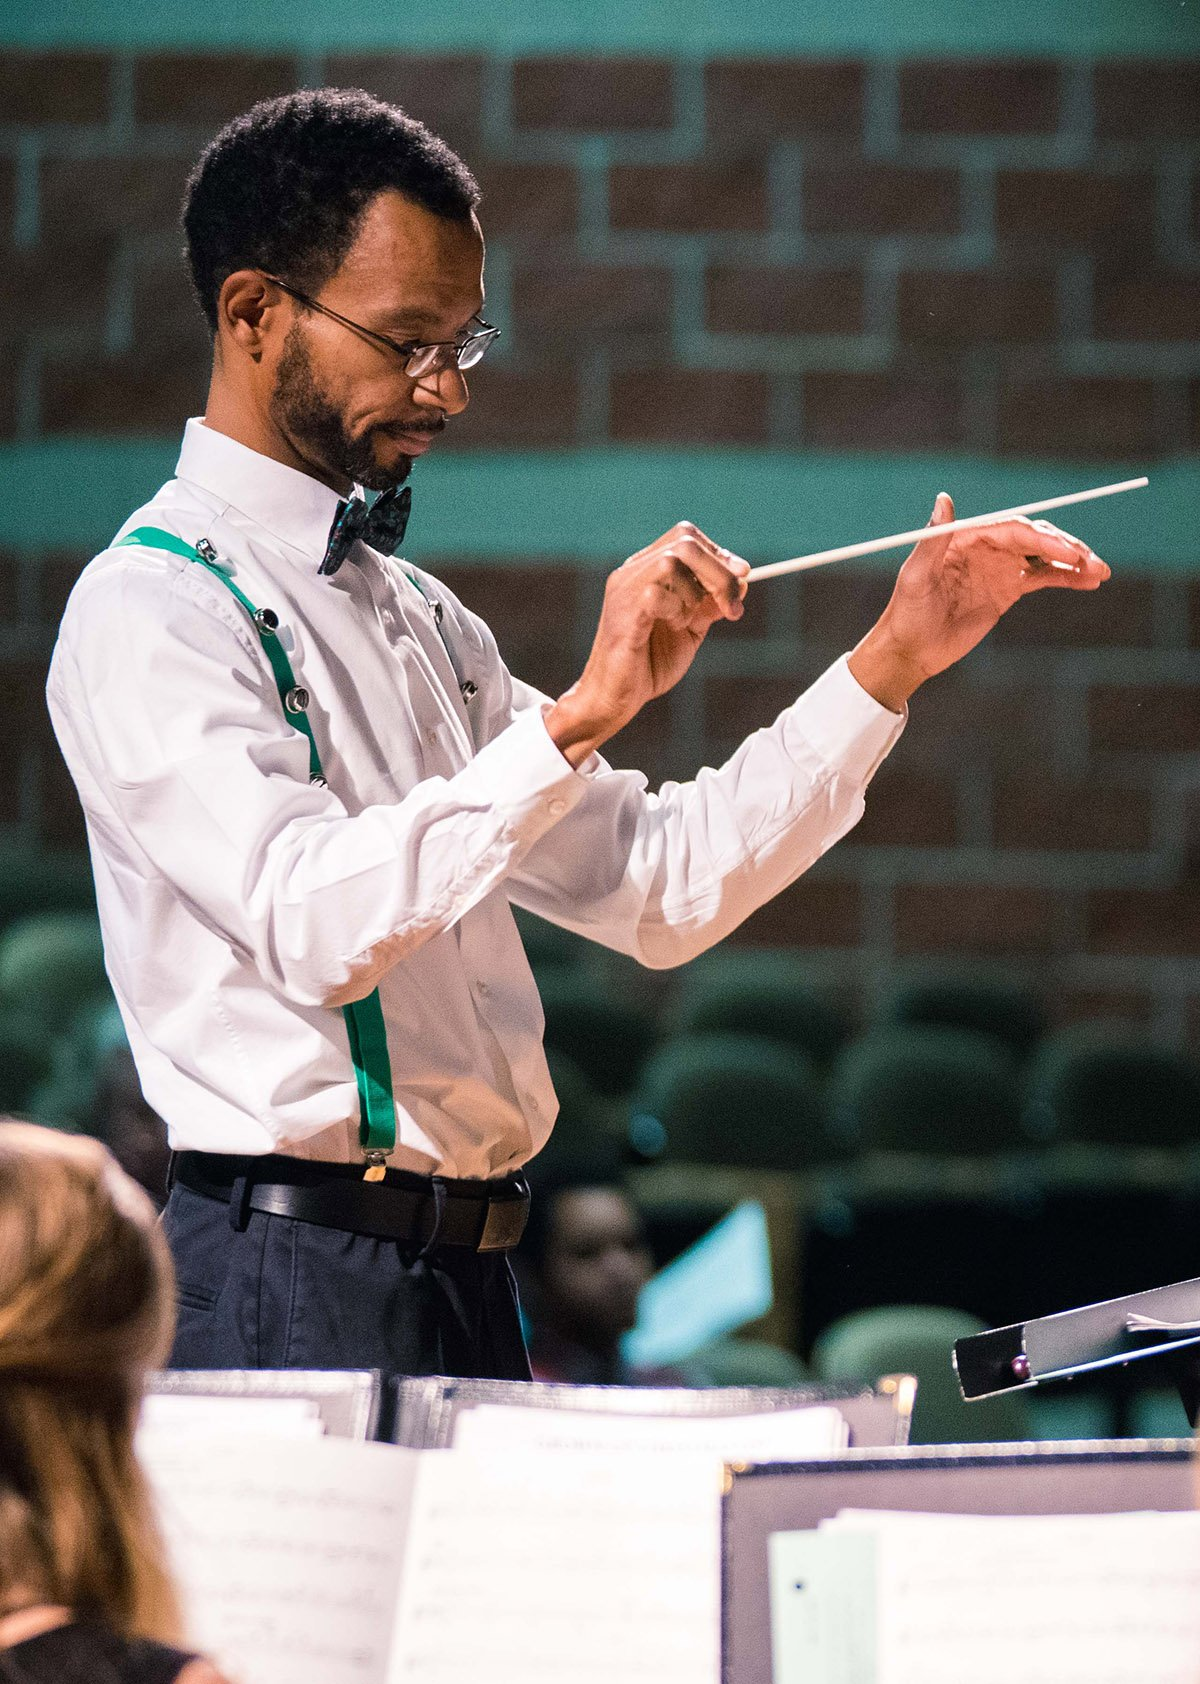 Conductor conducting the chamber music recital